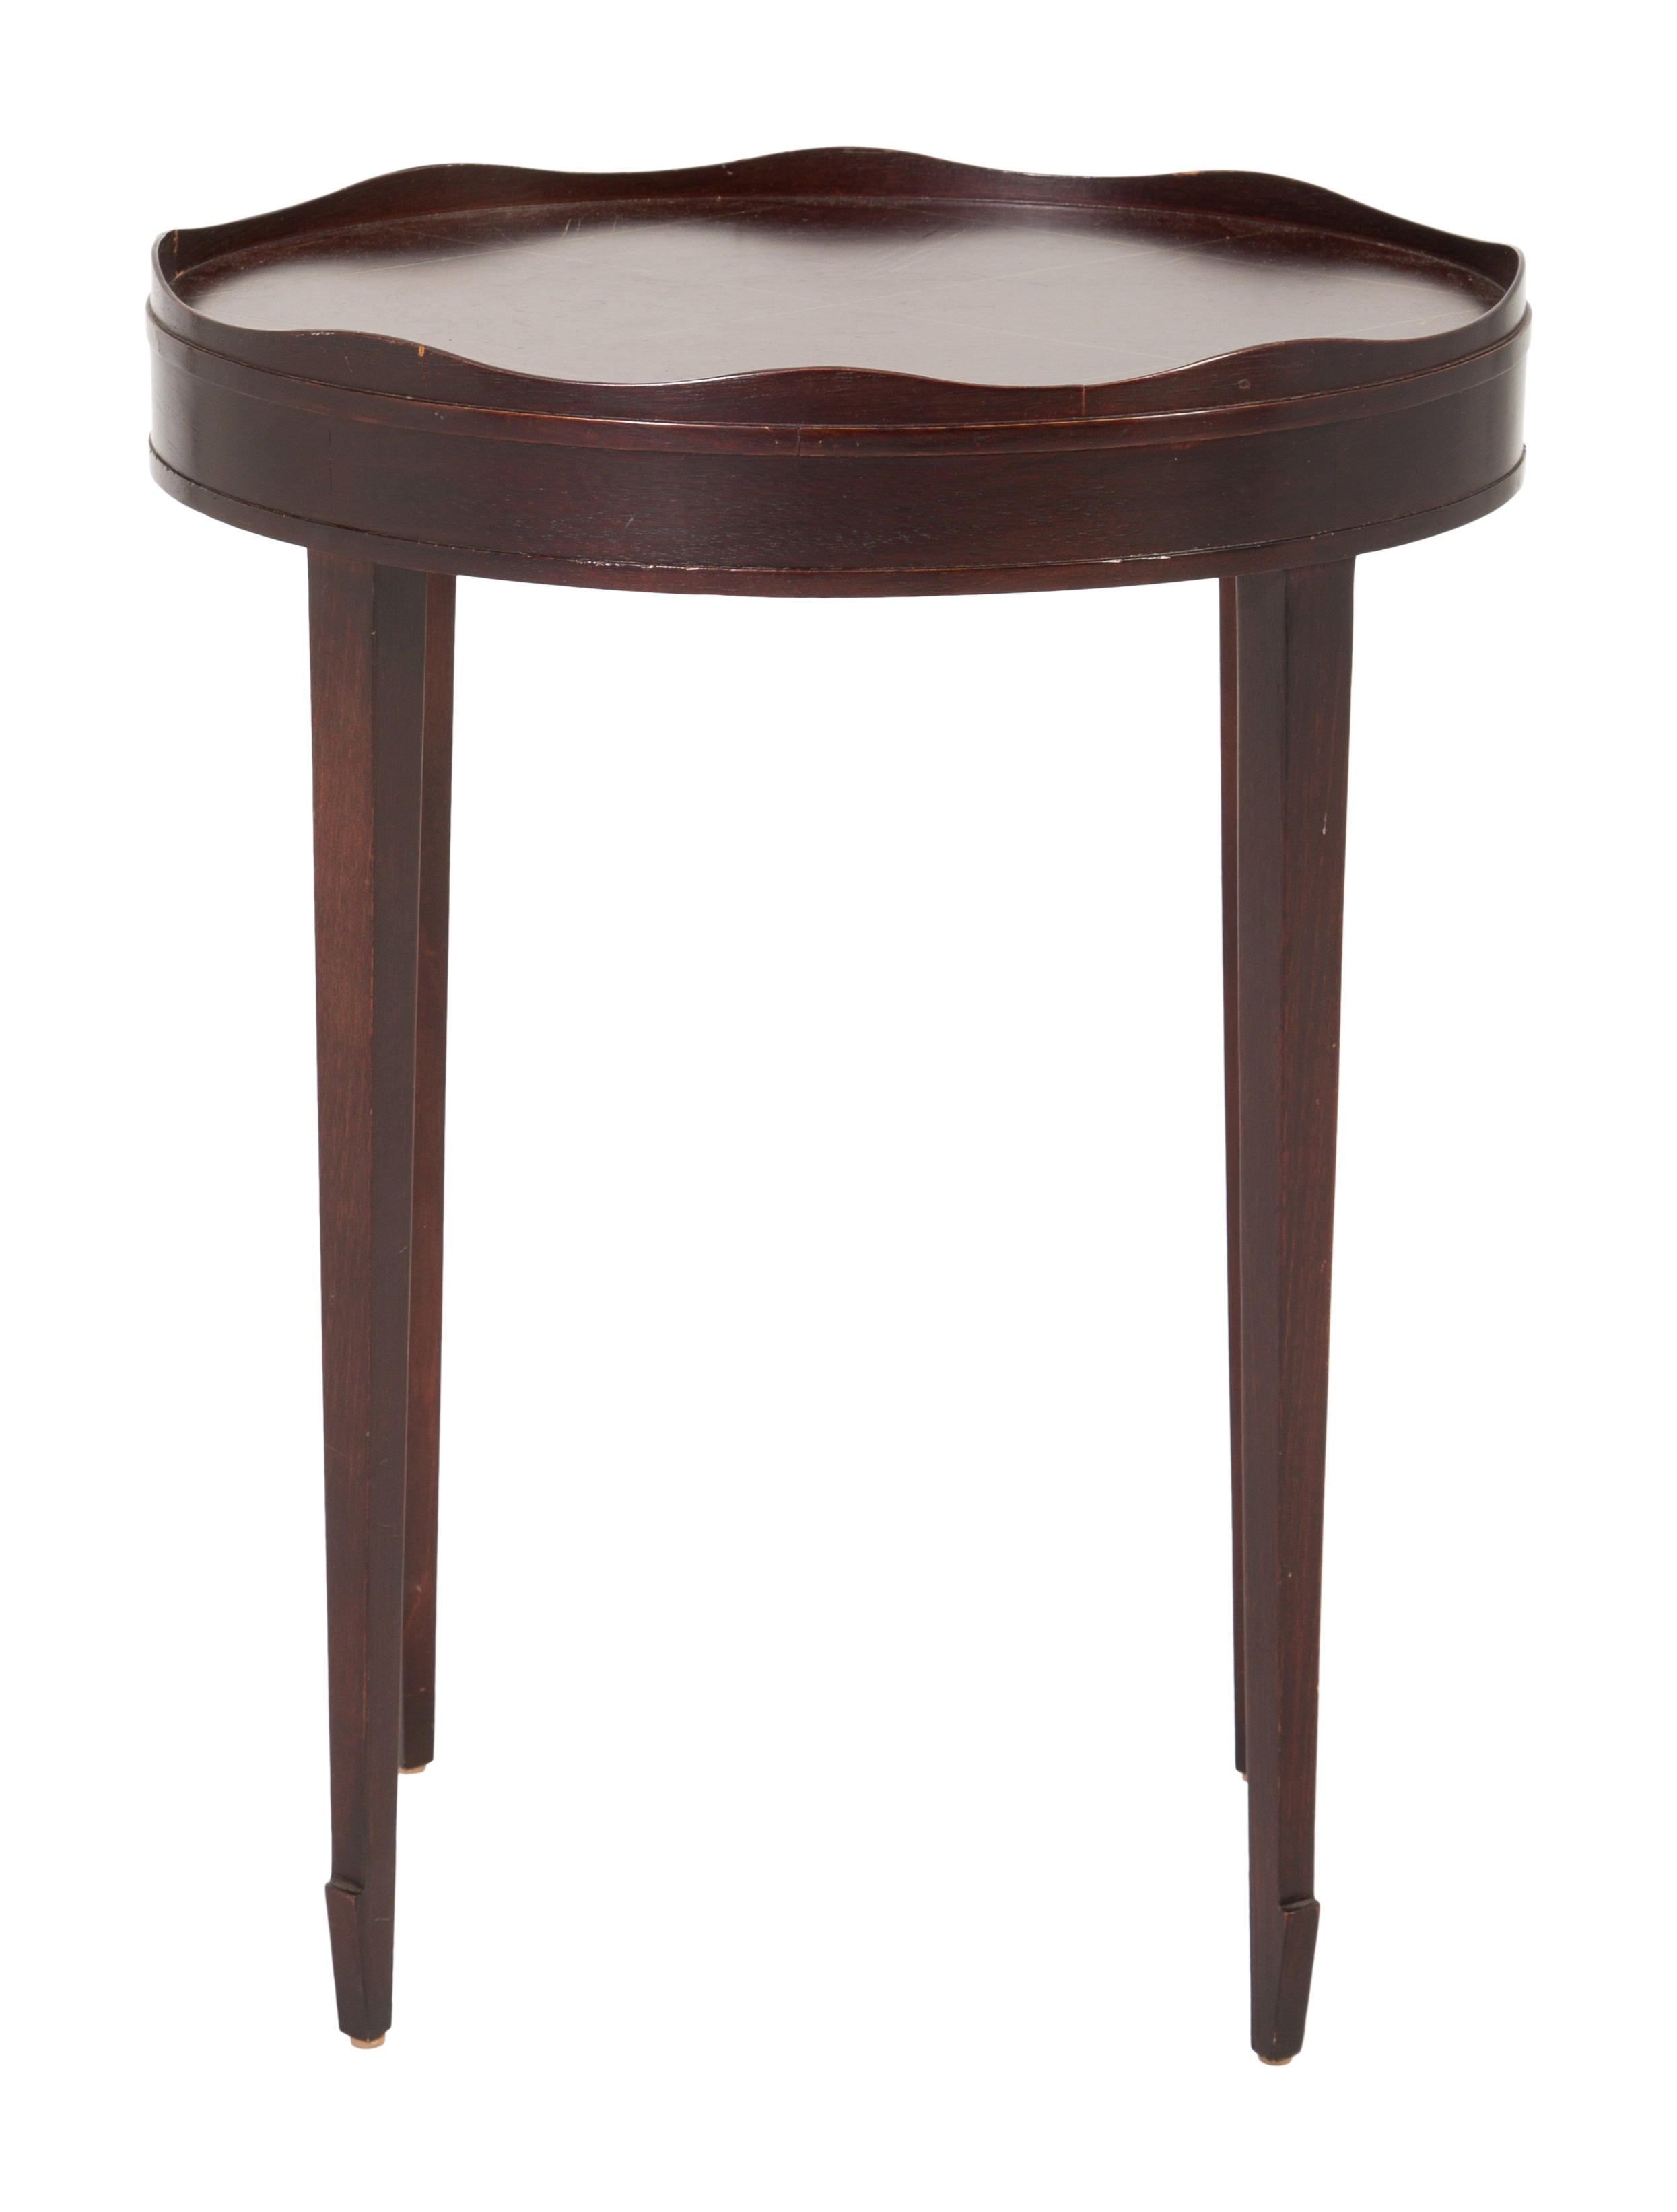 Baker barbara barry collection side table furniture baker20013 the realreal Barbara barry coffee table